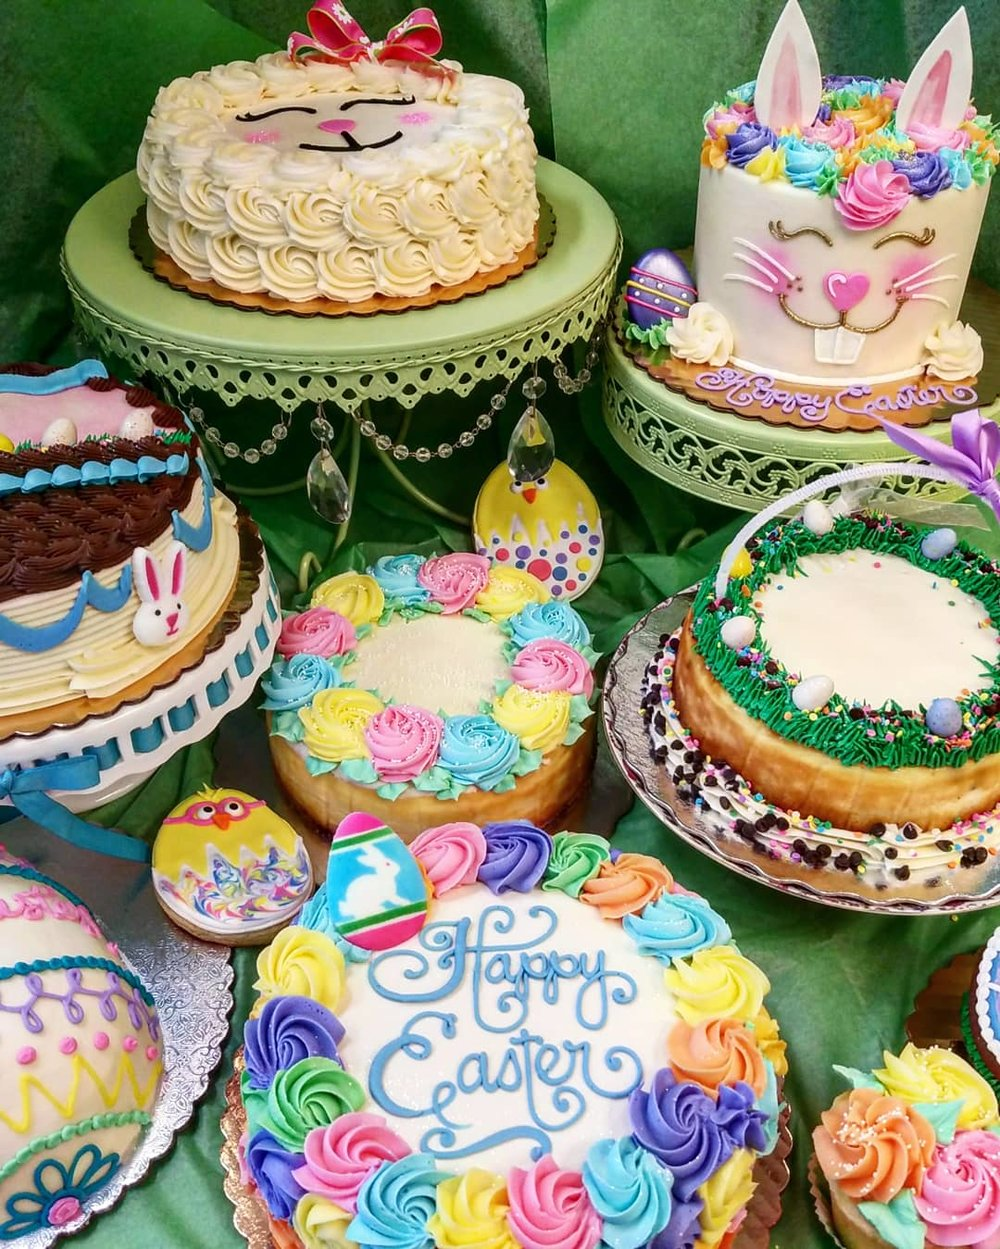 Easter Cakes and Cheesecakes Selection